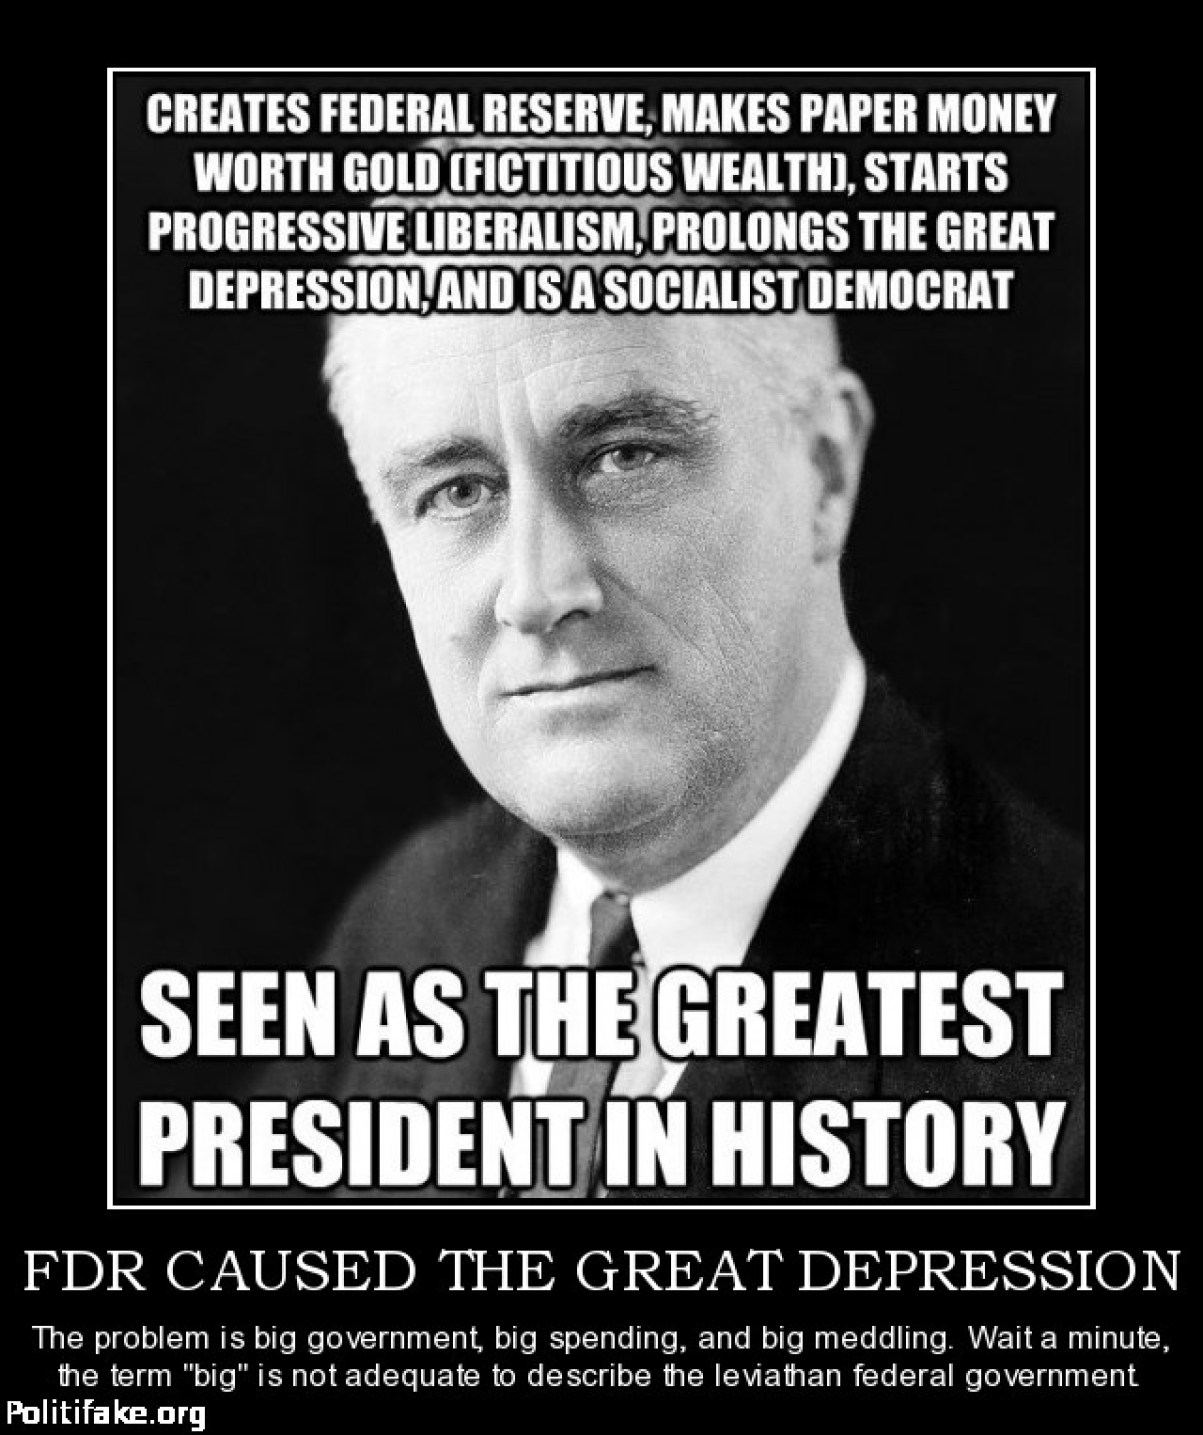 fdr-caused-the-great-depression-battaile-politics-1357801903